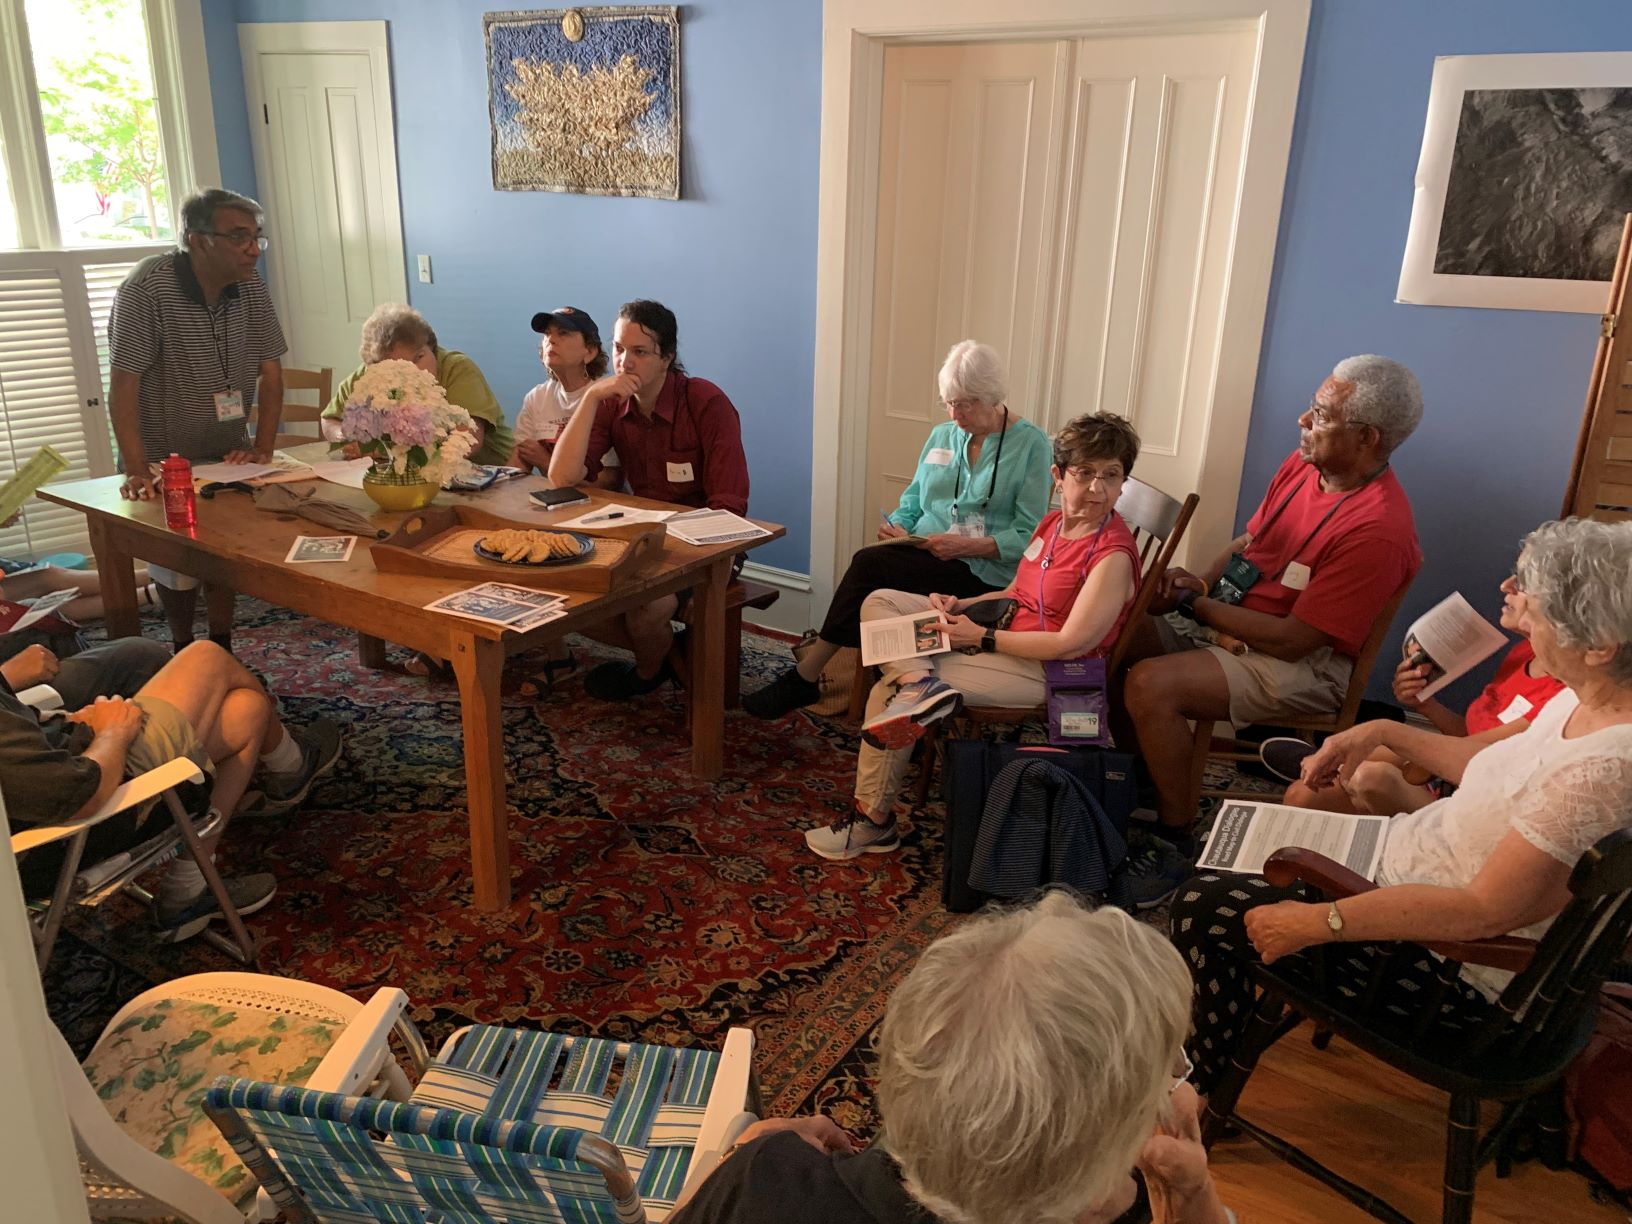 - AAHH-hosted Chautauqua Dialogues have been very popular. Week 5 we were asked to host dual sessions and still the groups were overpopulated - 51 people in attendance total.